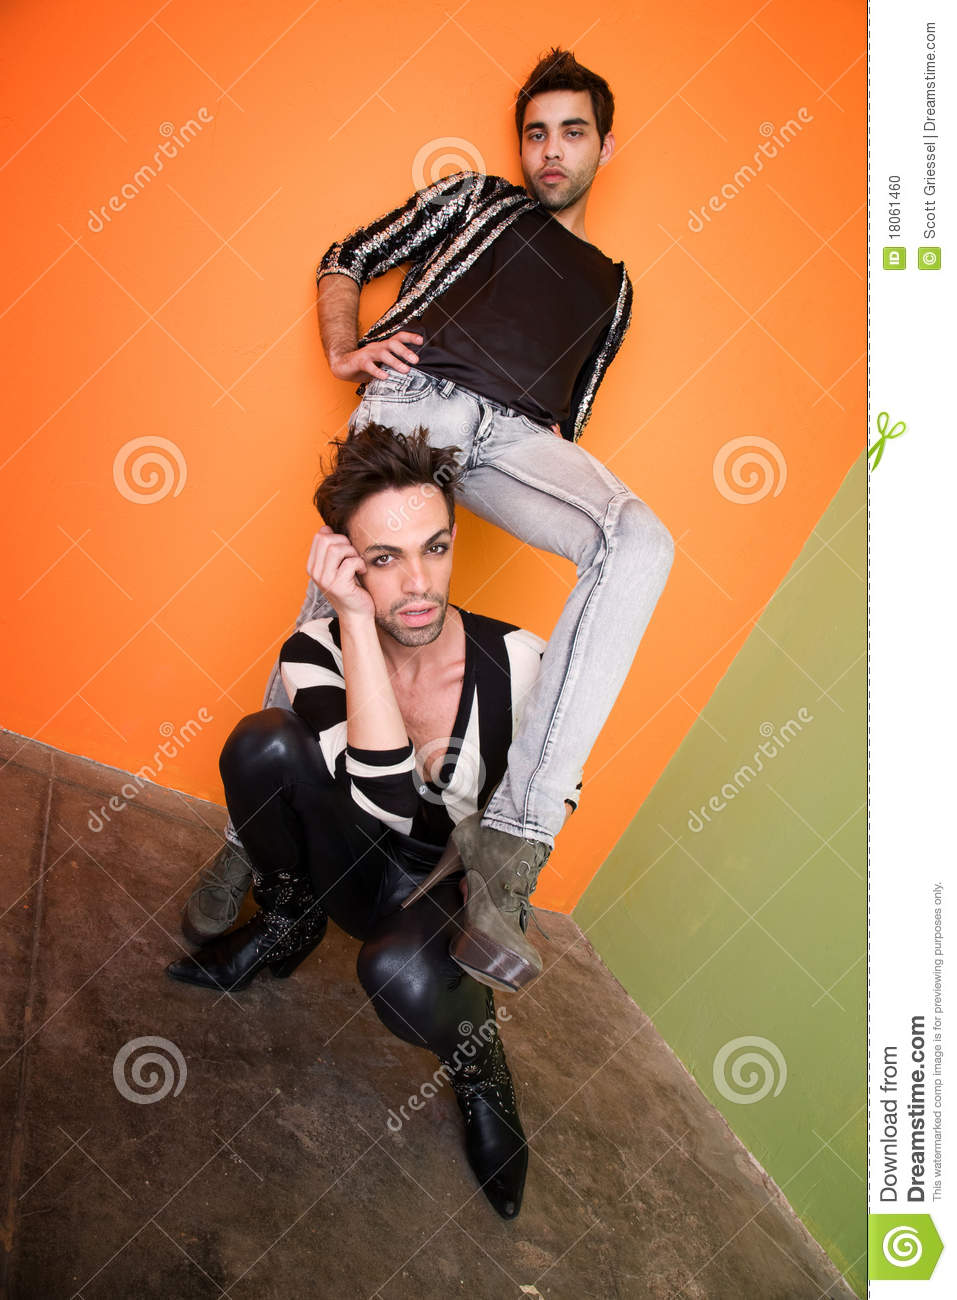 Gay Sexy Download with good looking and gay couple stock photo - image: 18061460